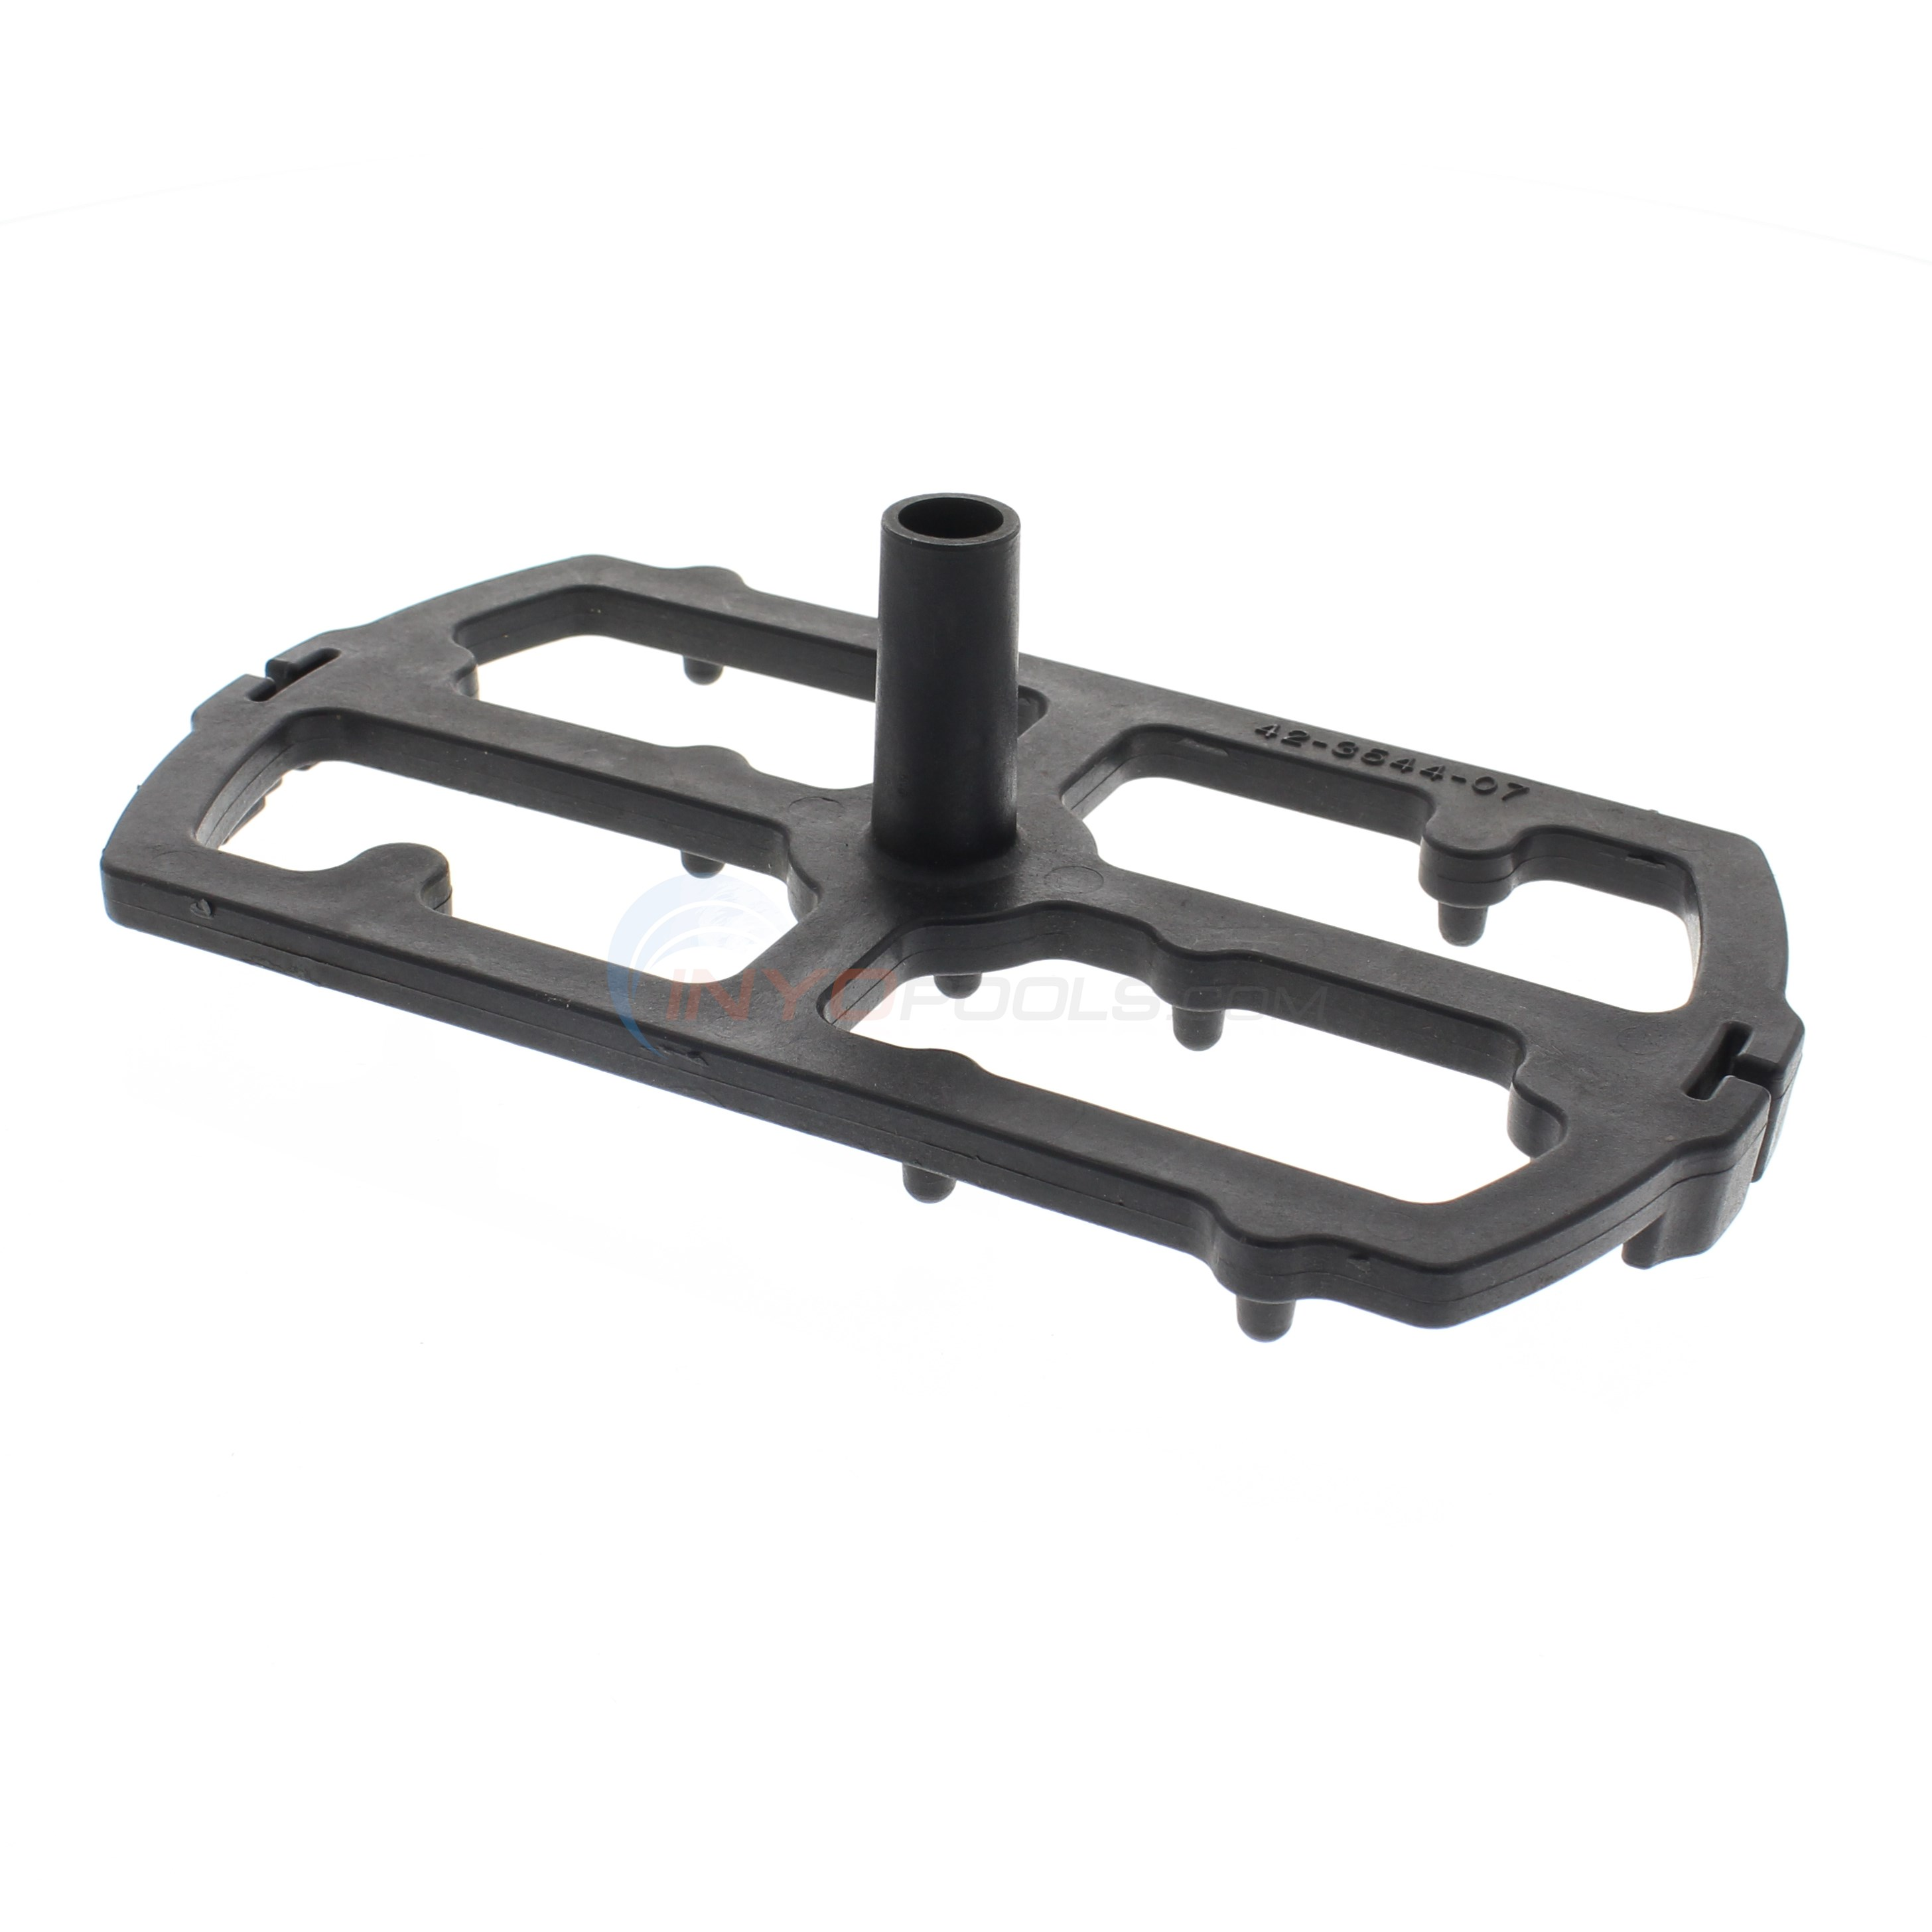 PLATE, UPPER SUPPORT LS40, 55, 70 (42354407R000)